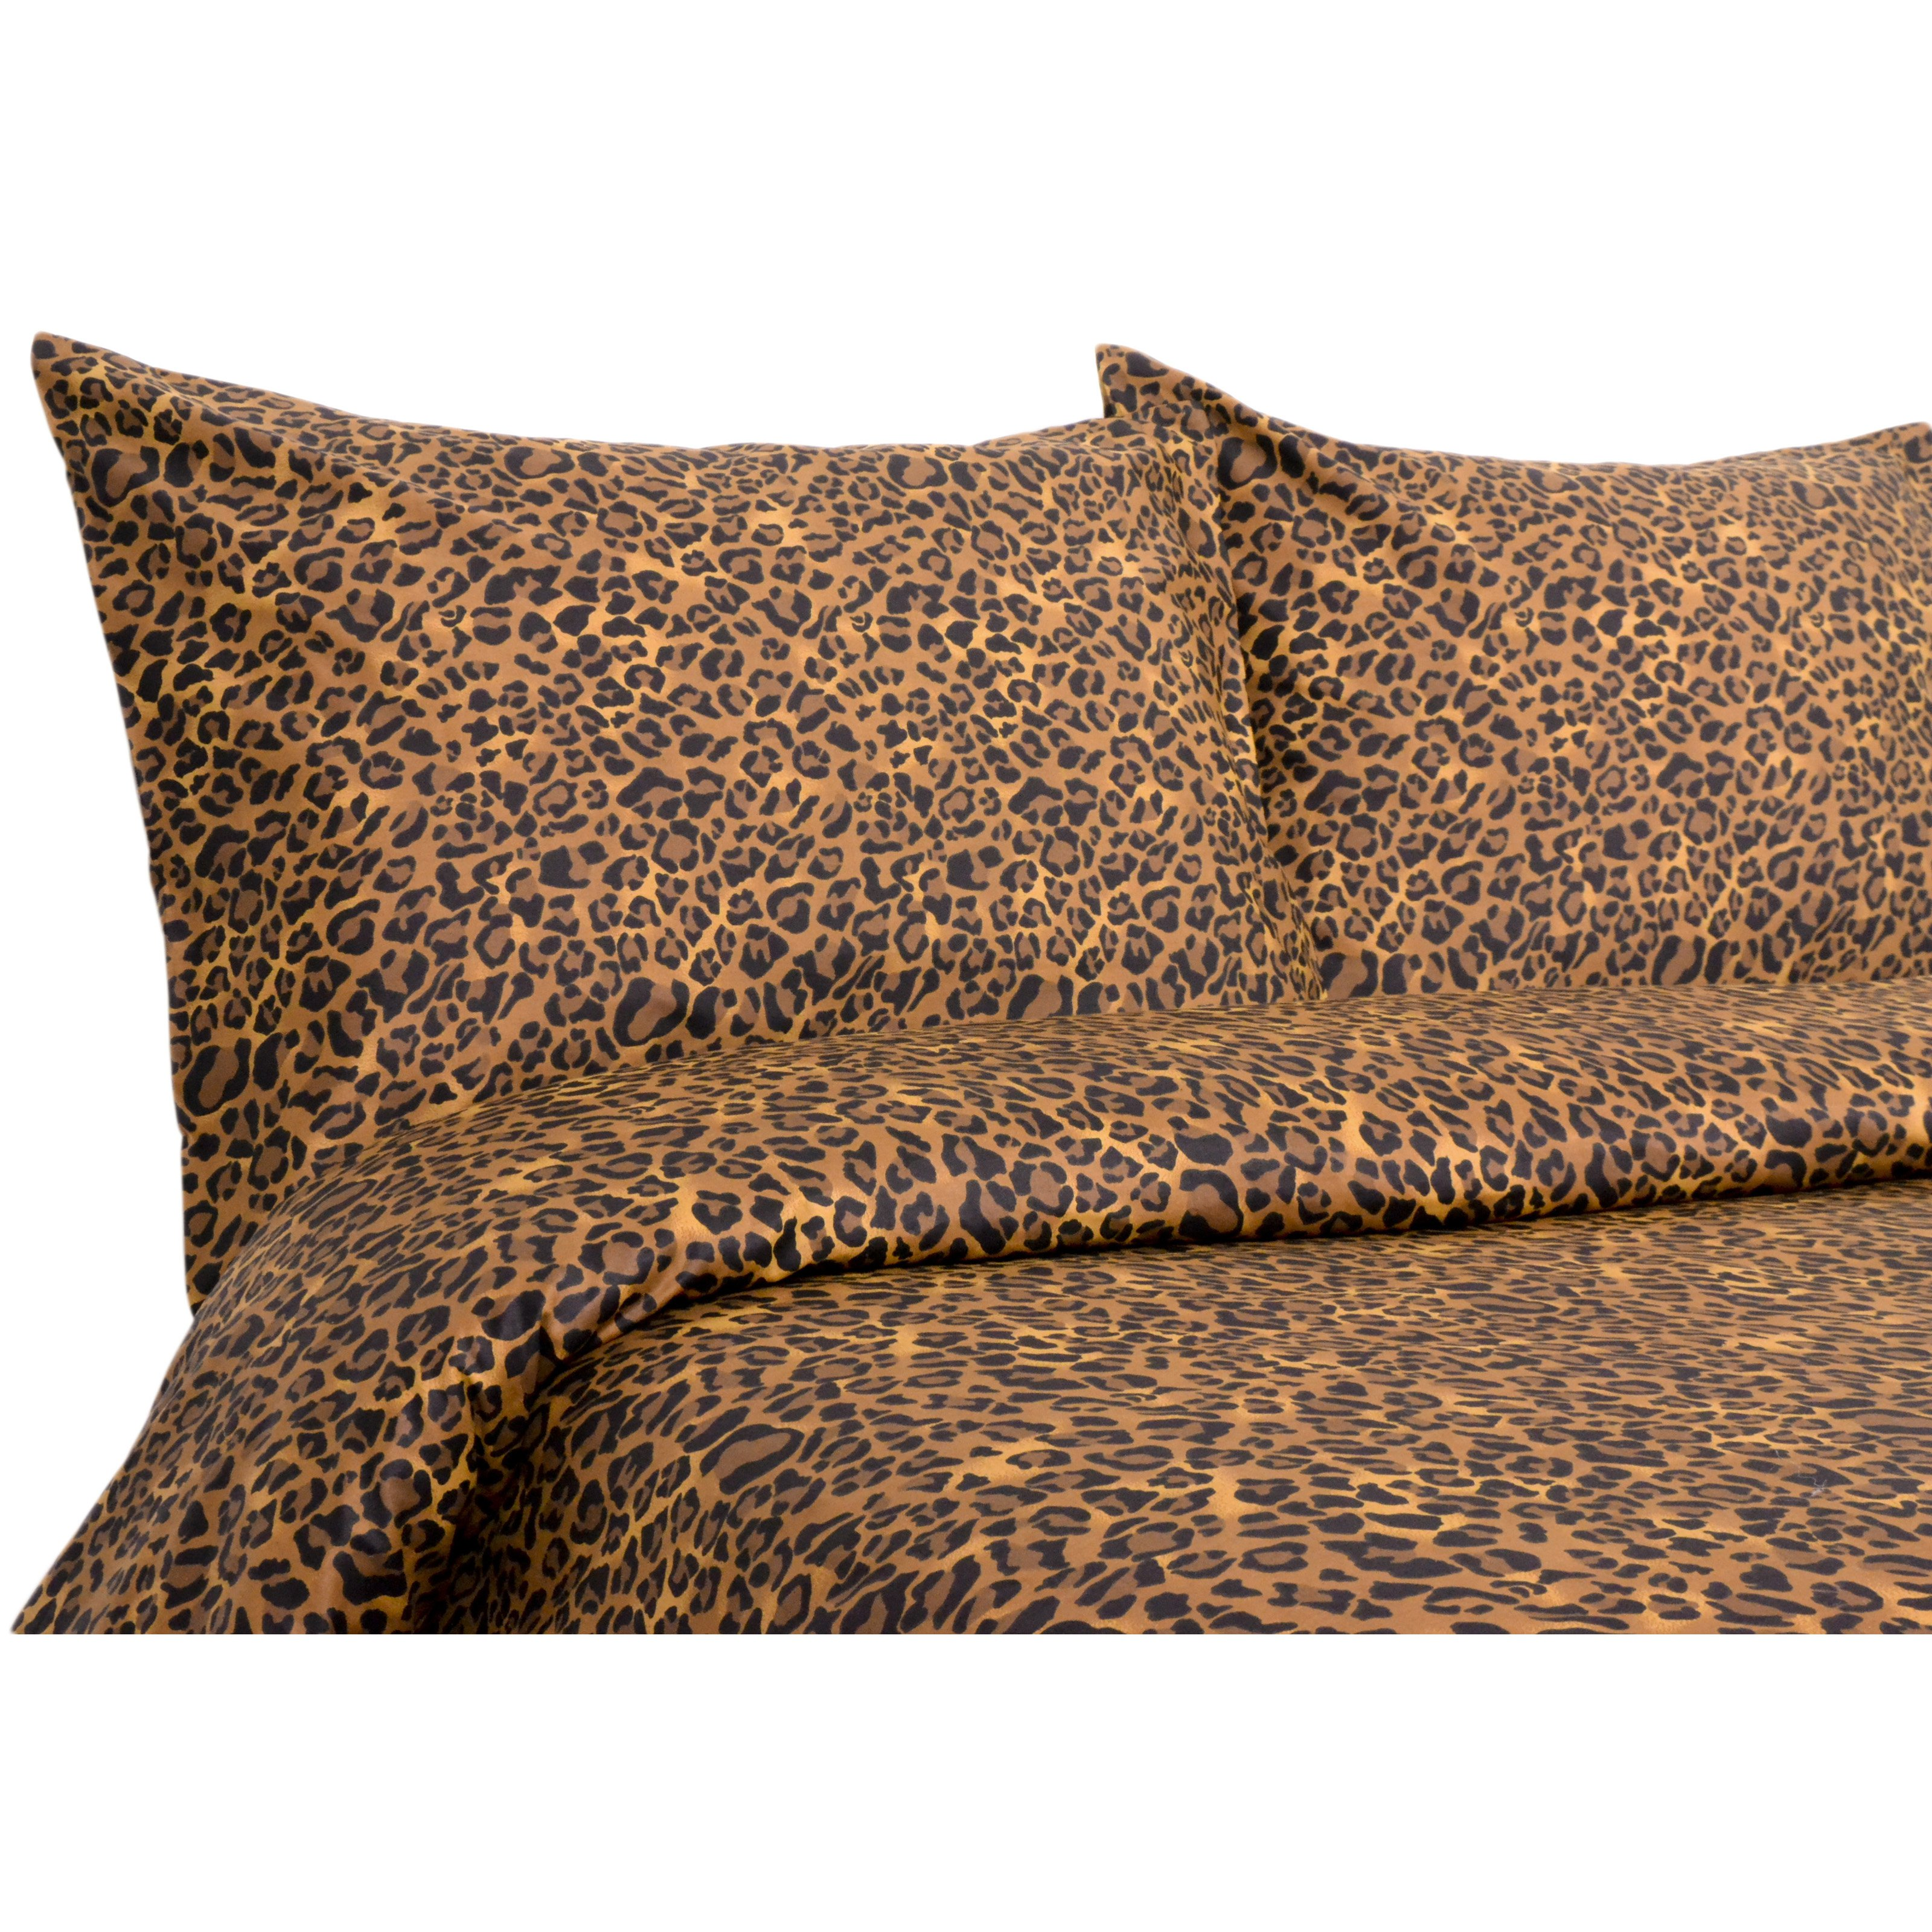 Elite Home 300 Thread Count Leopard Bedding Set